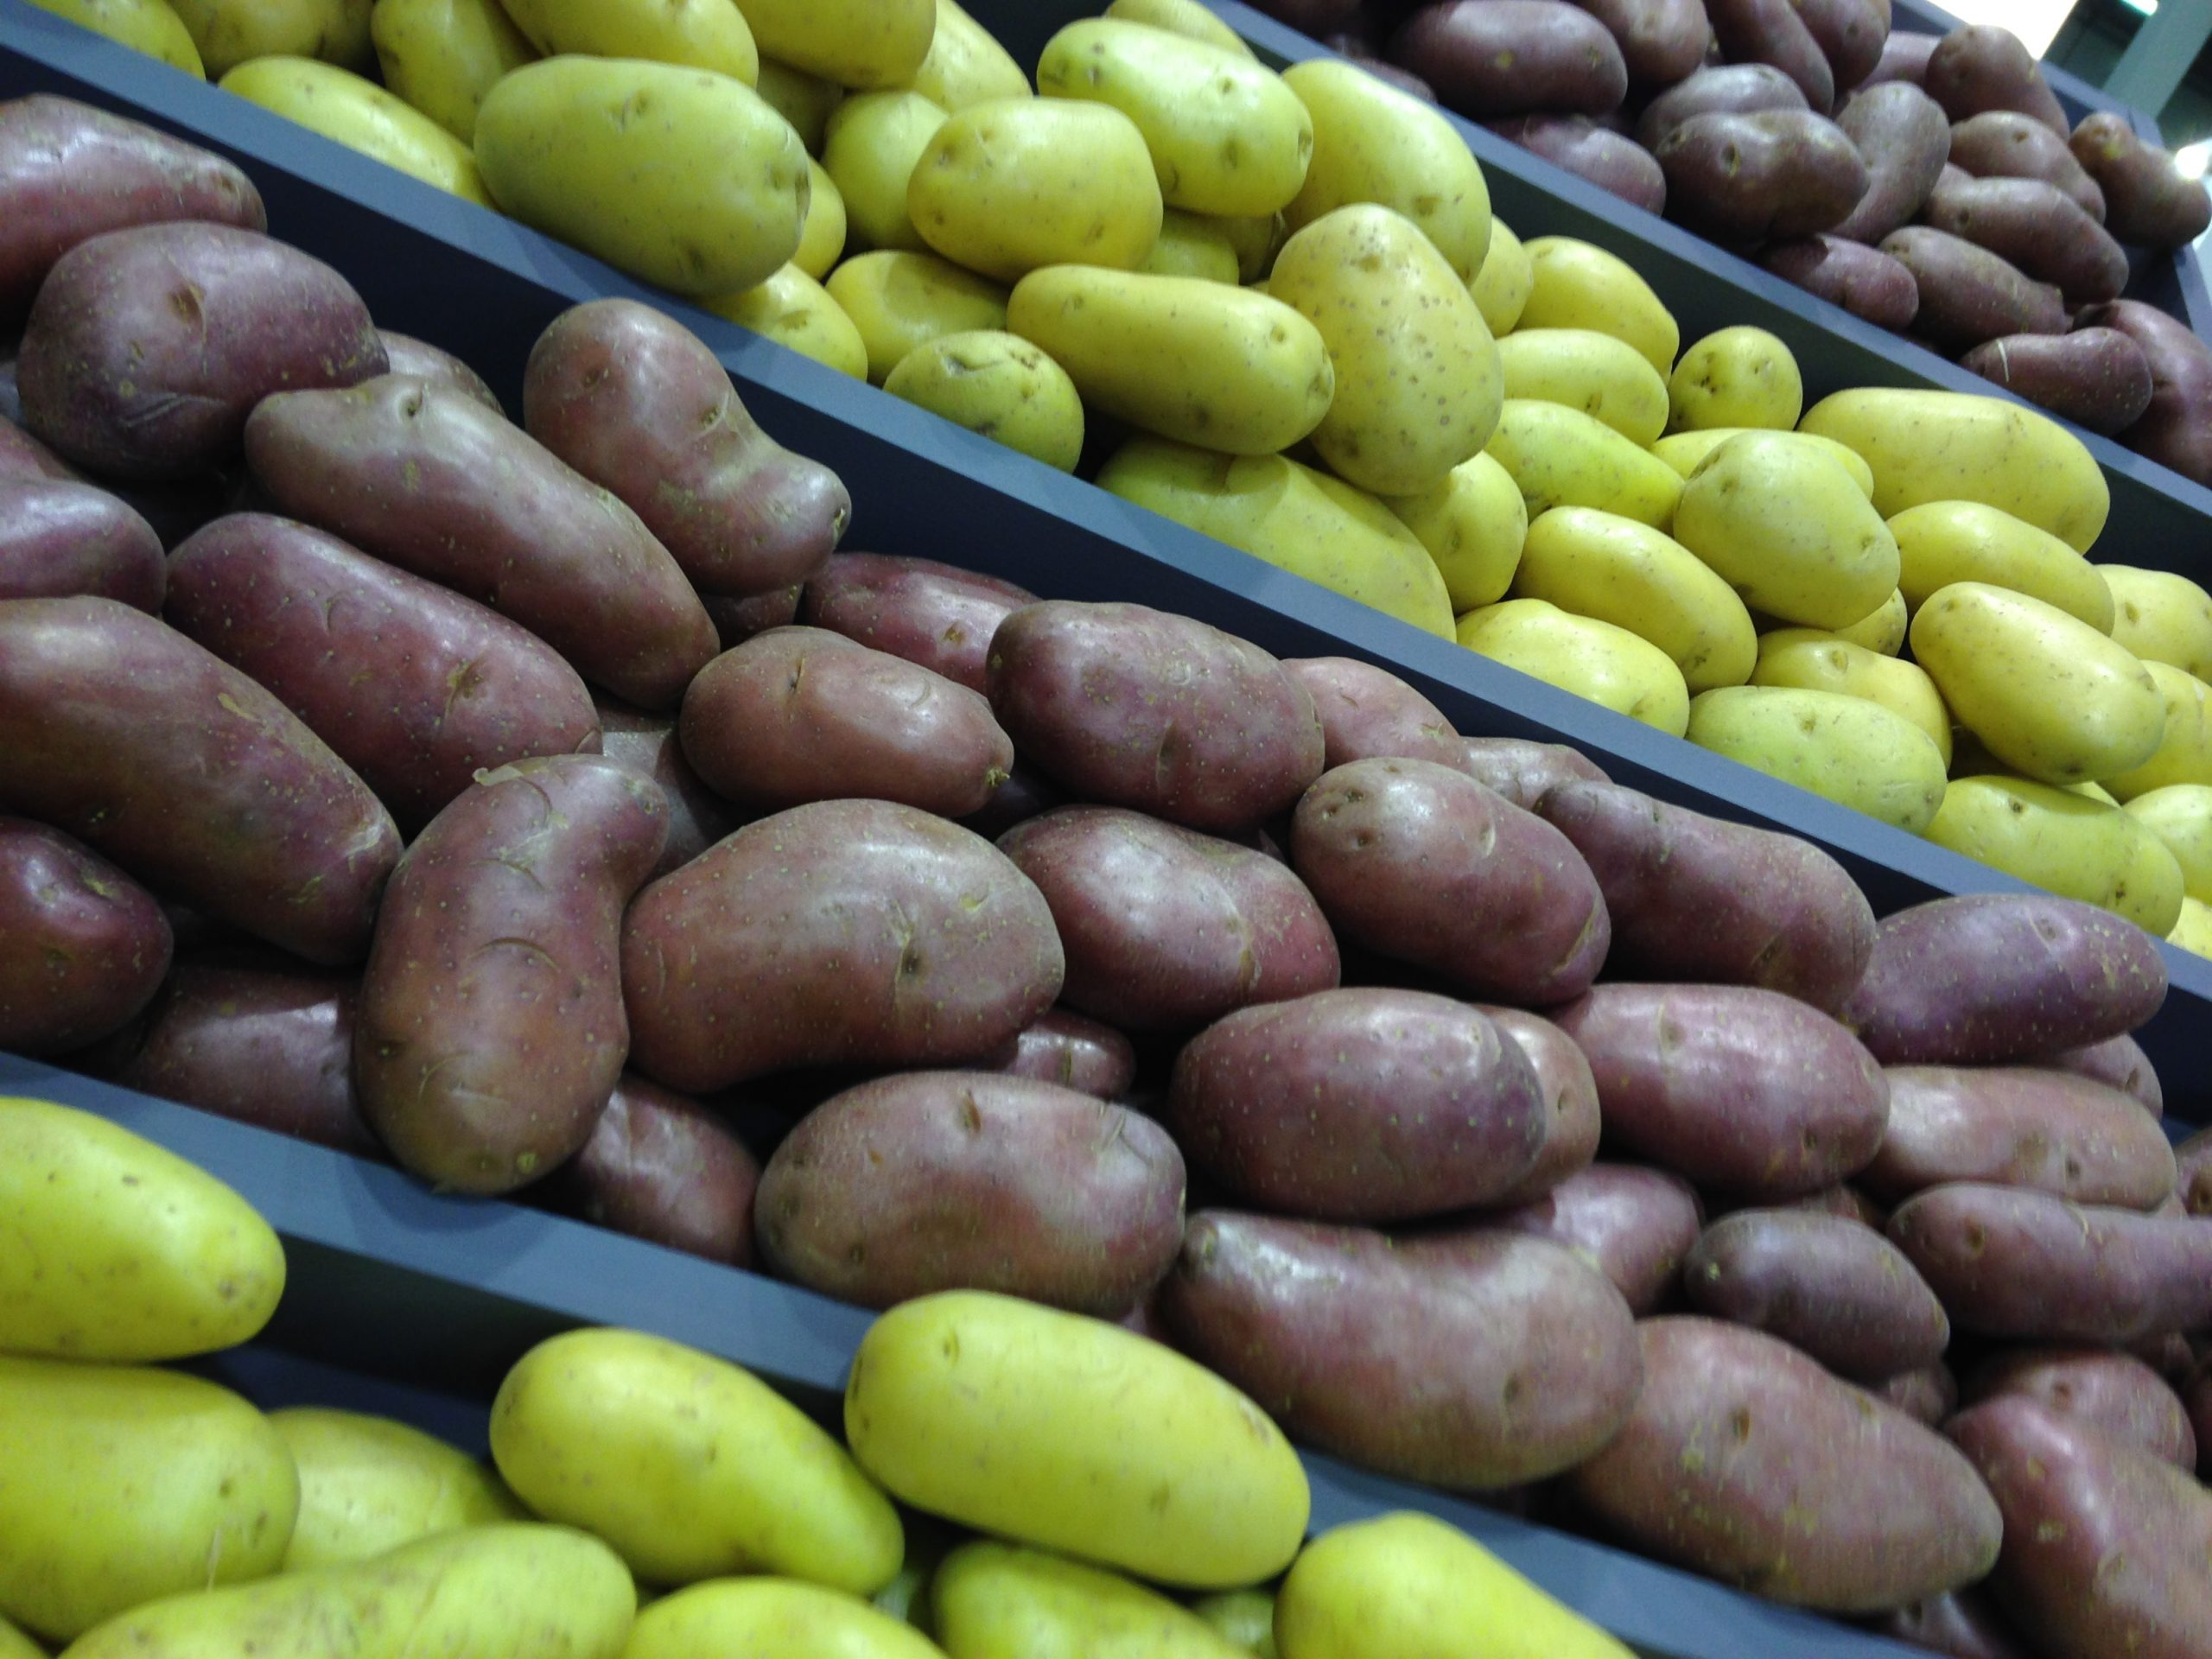 China's bid to make potatoes the country's fourth most important staple crop – after rice, wheat and corn – is motivated by food security and sustainability concerns, explains Euromonitor International.